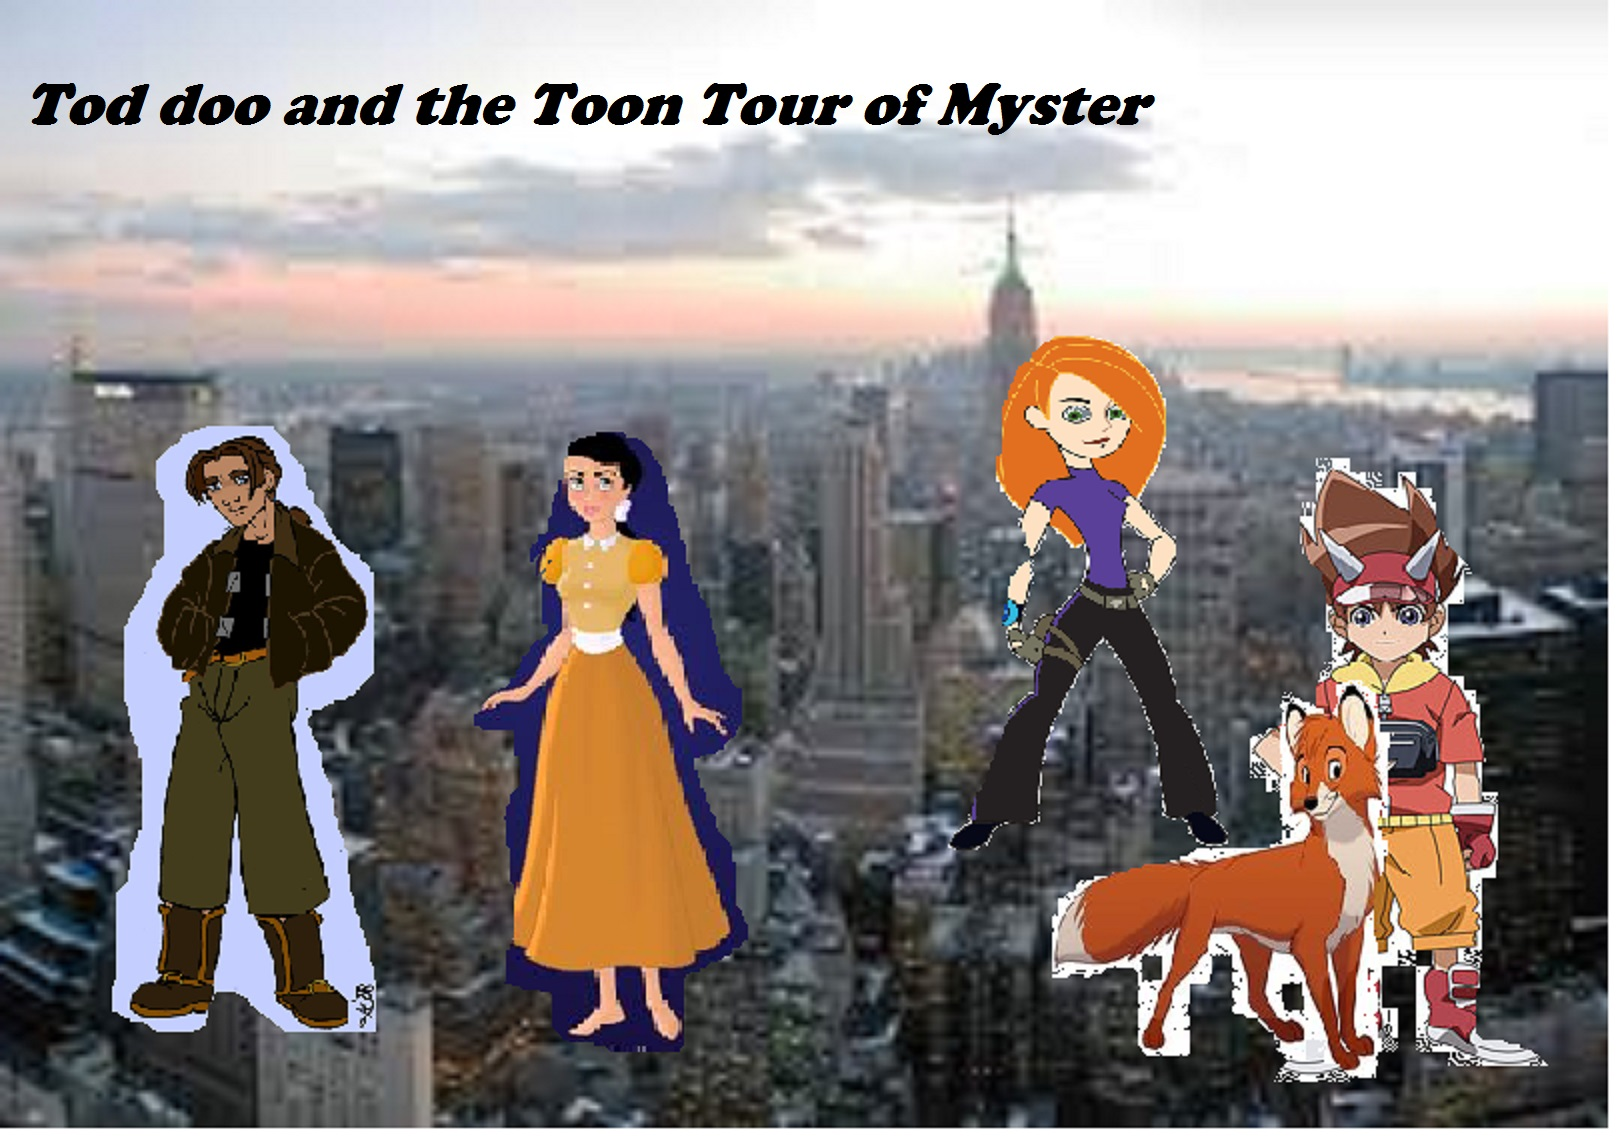 Tod Doo and the Toon Tour of Mysteries